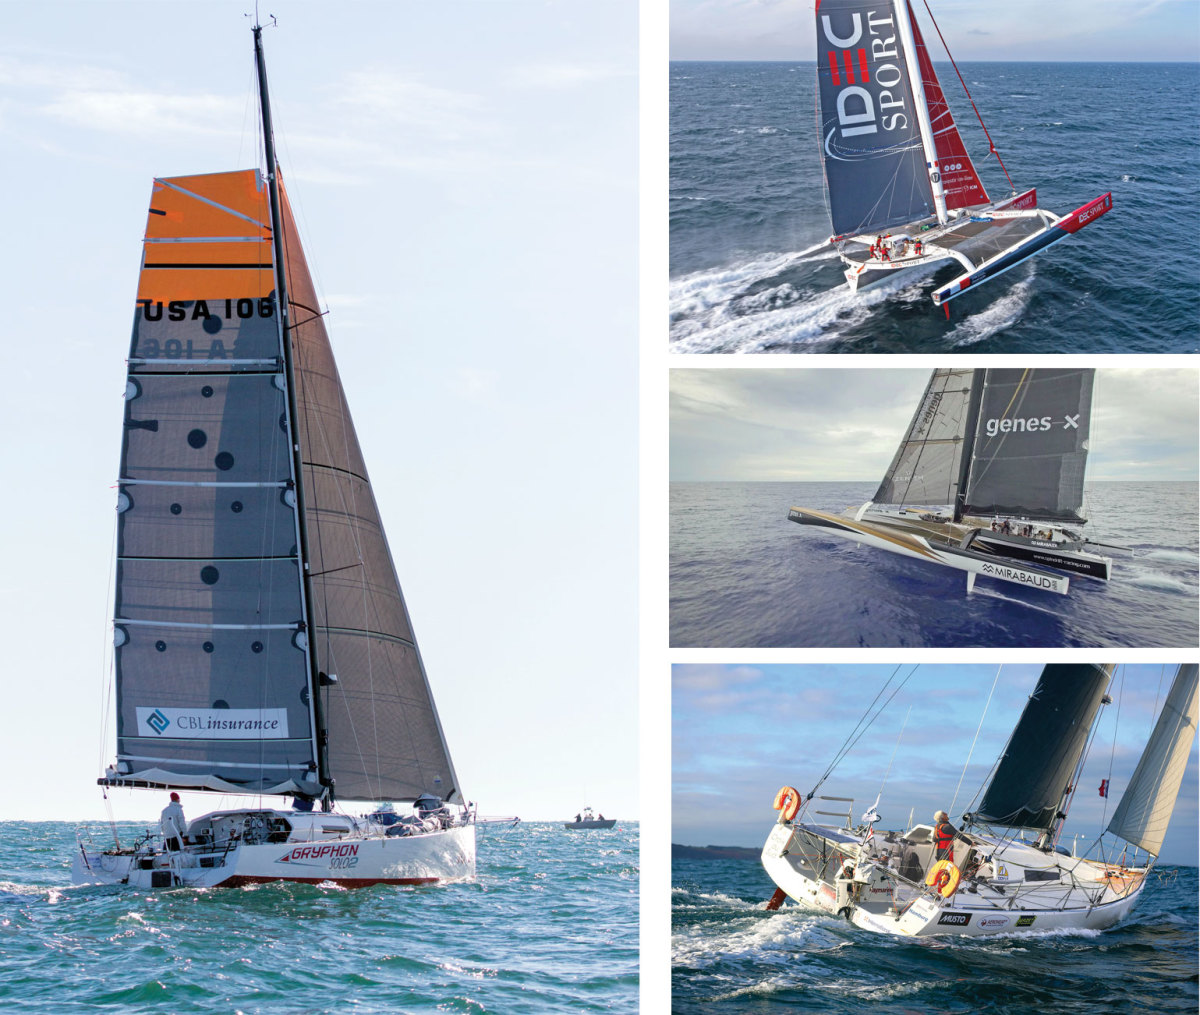 The four speedsters looking to set records included (clockwise from left) GryphonSolo 2, IDEC Sport, Spindrift 2 and Croix du Sud. Photos courtesy of (clockwise from left) Billy Black, JM LIOT/DPPI/IDEC; Yann Riou/Spindrift Racing; by yacht/n Gunter